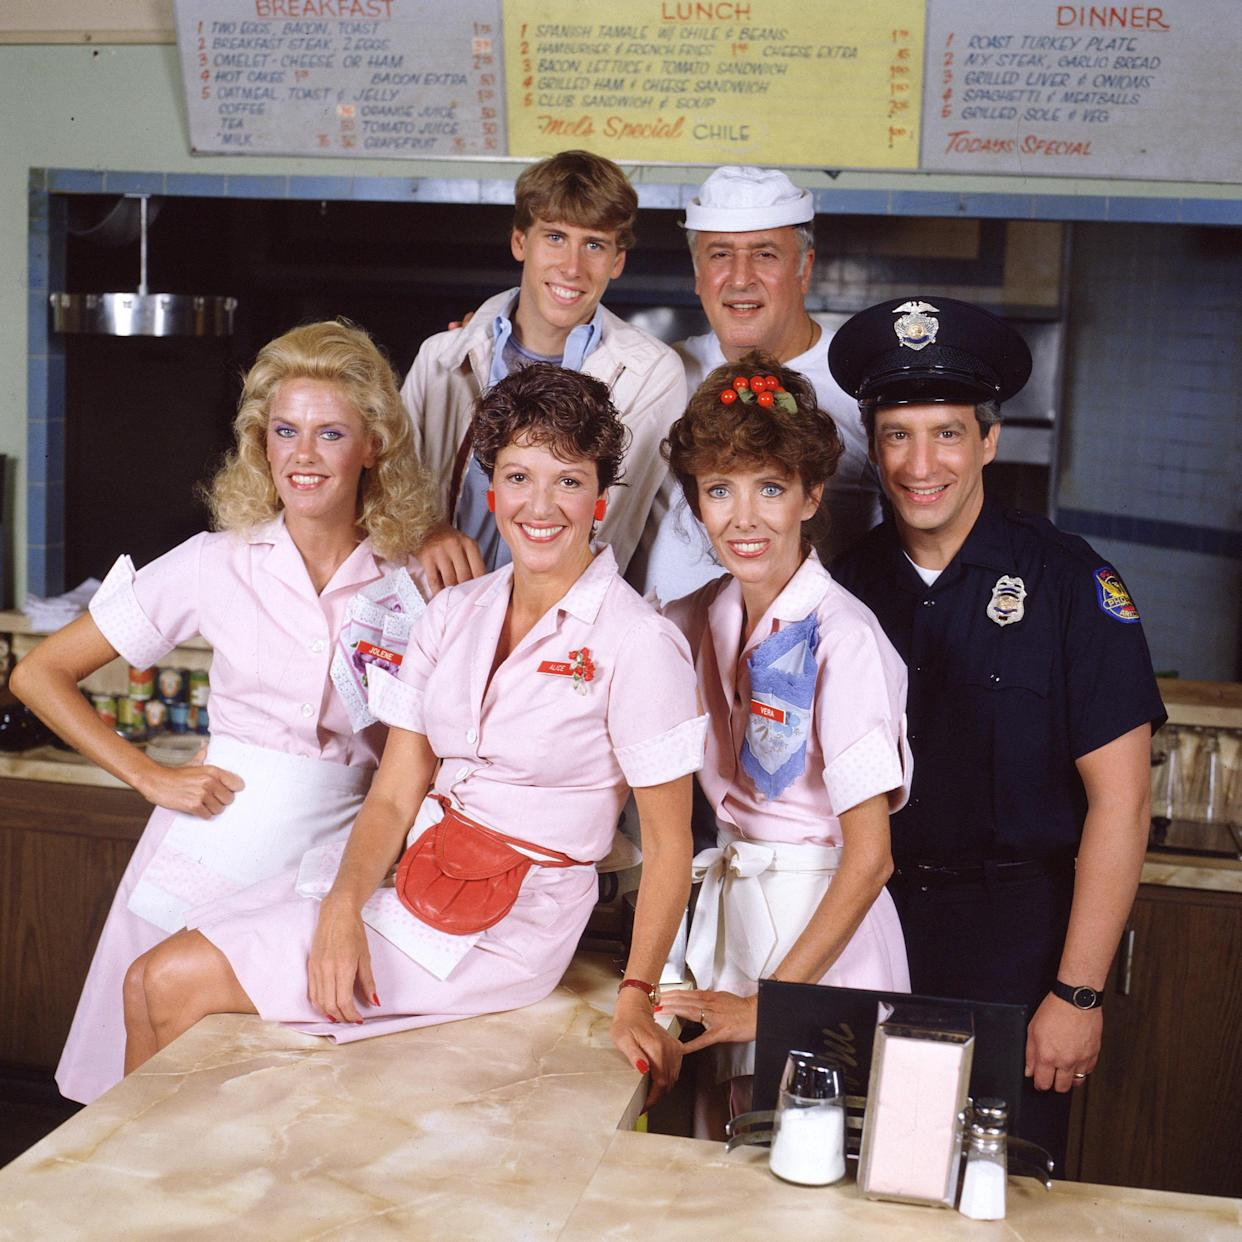 Alice, a television situation comedy, featuring (in front, left to right) Celia Weston, Linda Lavin, Beth Howland, and Charles Levin. In back, left to right, Philip McKeon and Vic Tayback. Image dated June 1, 1984. (Photo by CBS via Getty Images)